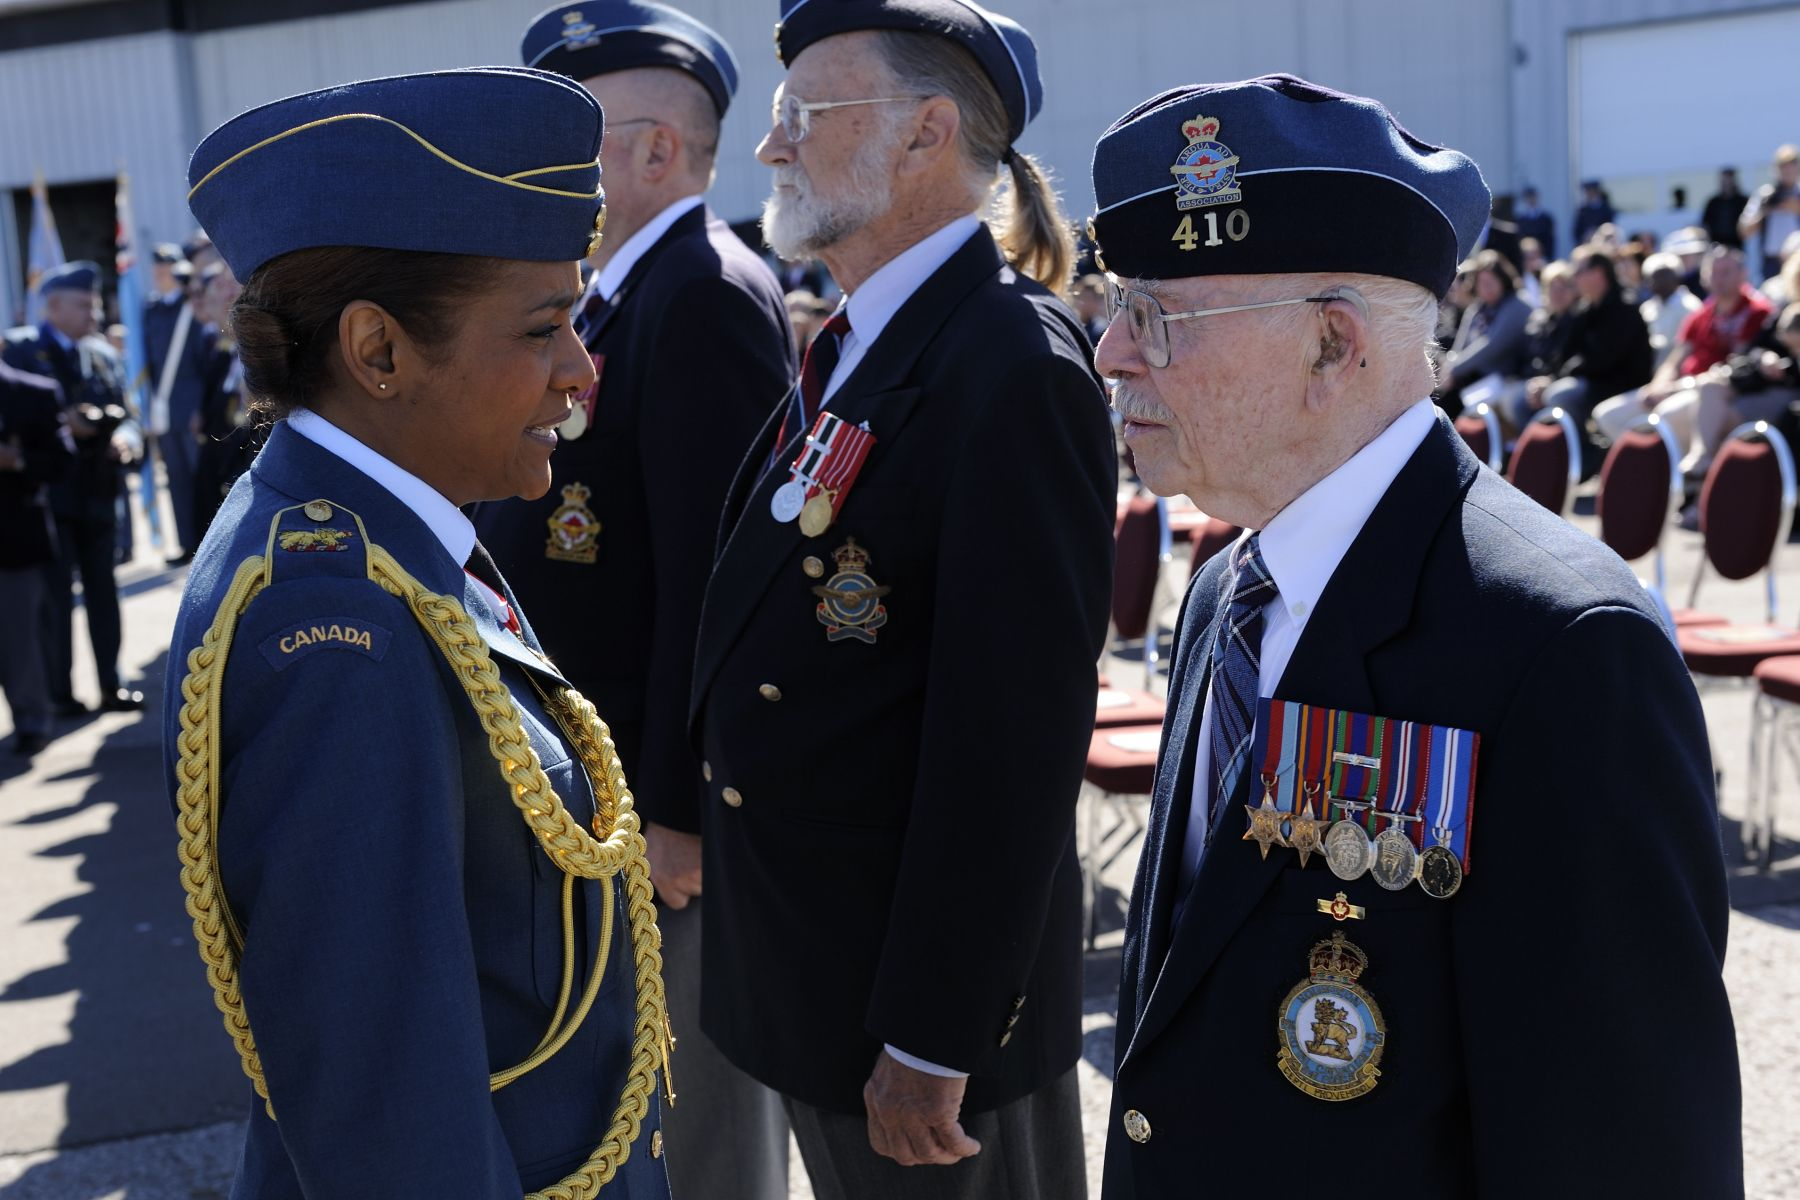 The Governor General took the time to speak with many of the veterans.